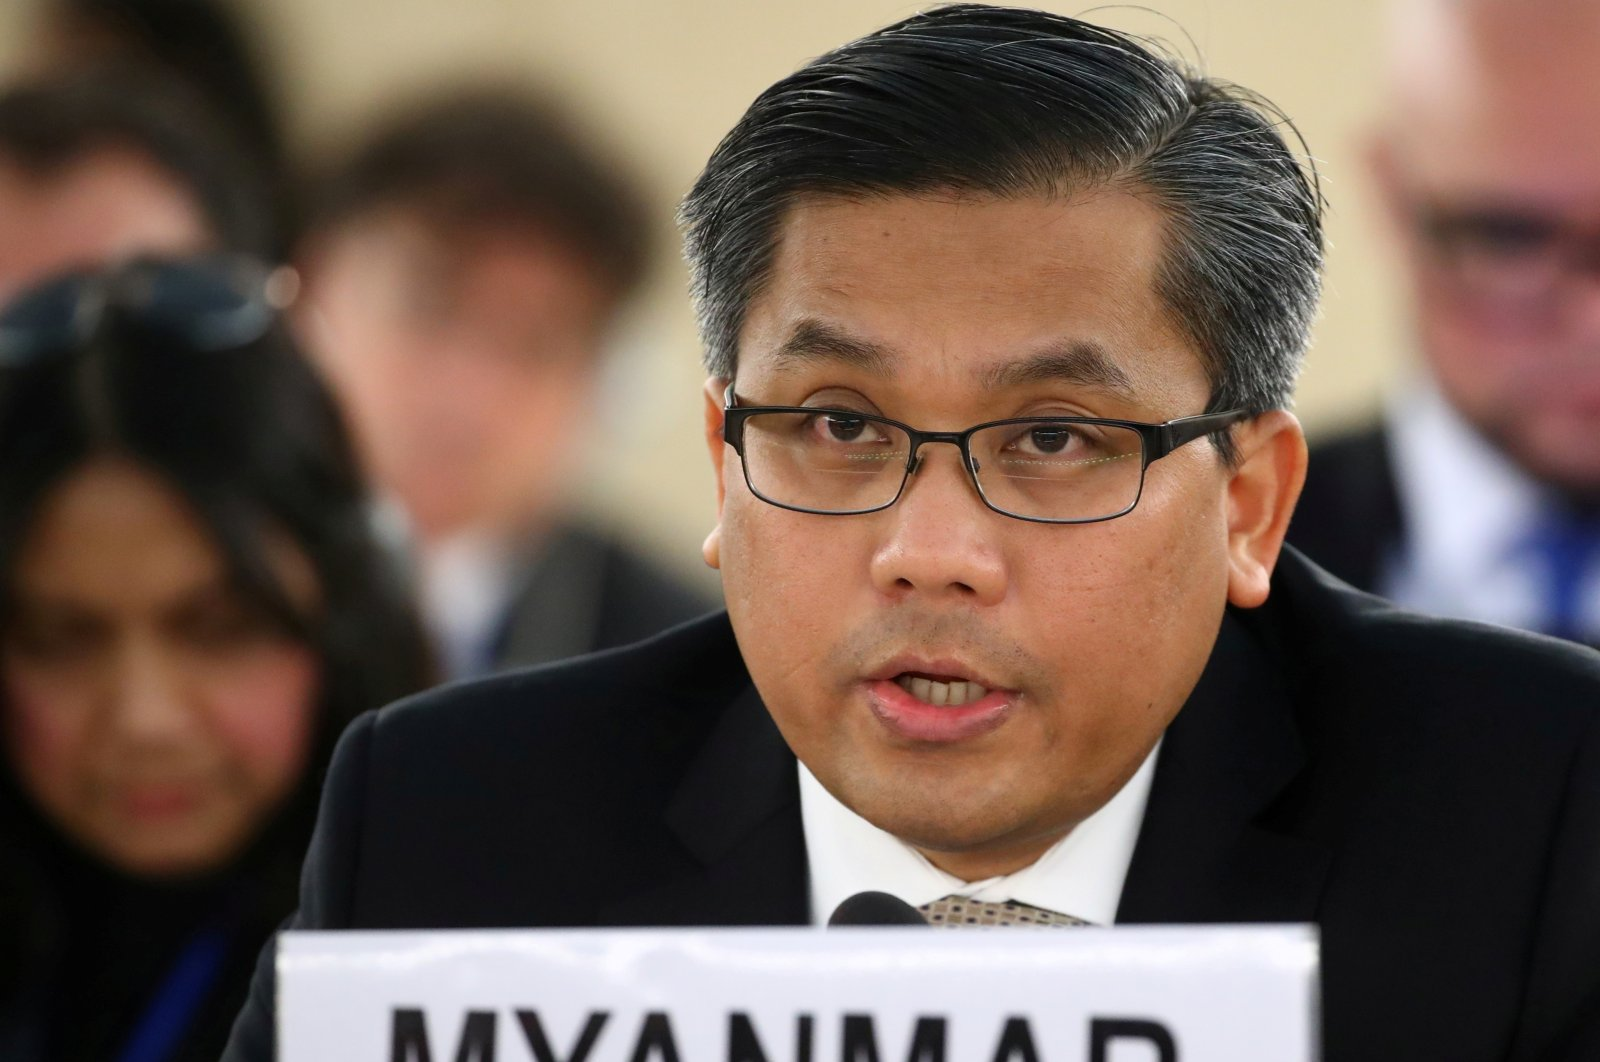 Myanmar's ambassador Kyaw Moe Tun addresses the Human Rights Council at the United Nations in Geneva, Switzerland, March 11, 2019. (Reuters)